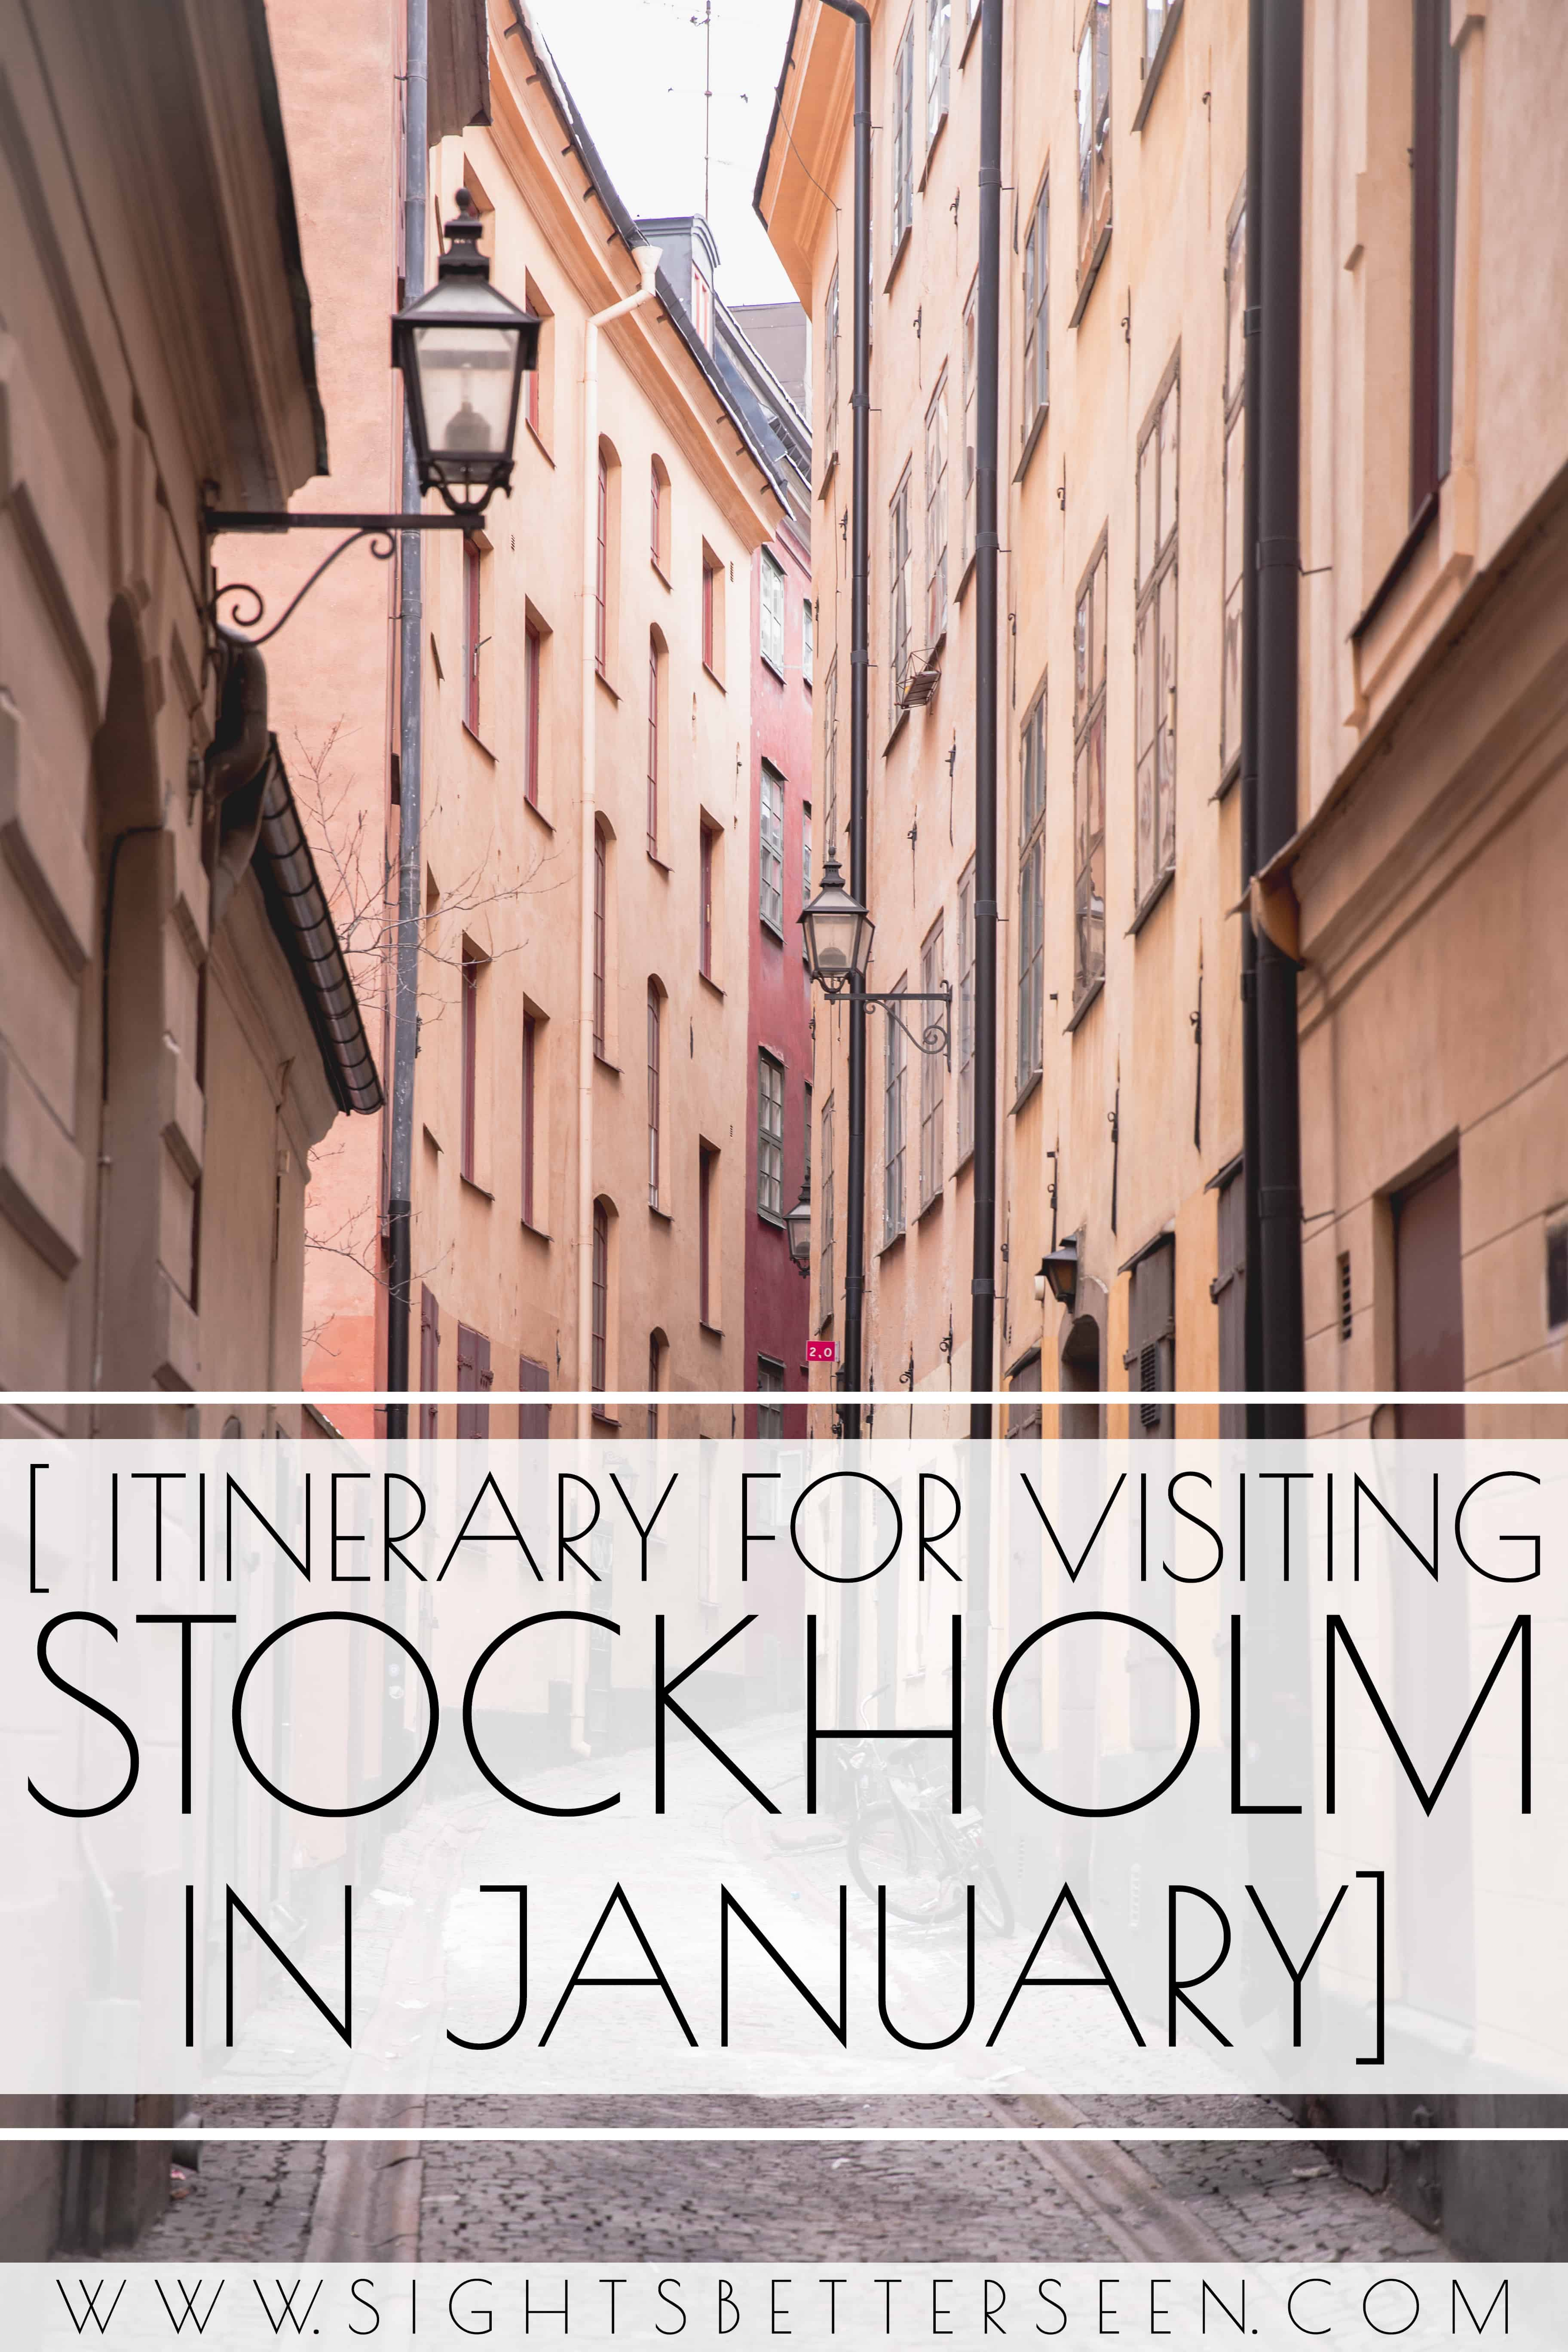 Why you should visit Stockholm in the middle of January - there are lots of great winter activities, like wandering around Gamla Stan and seeing the best metro station artwork!